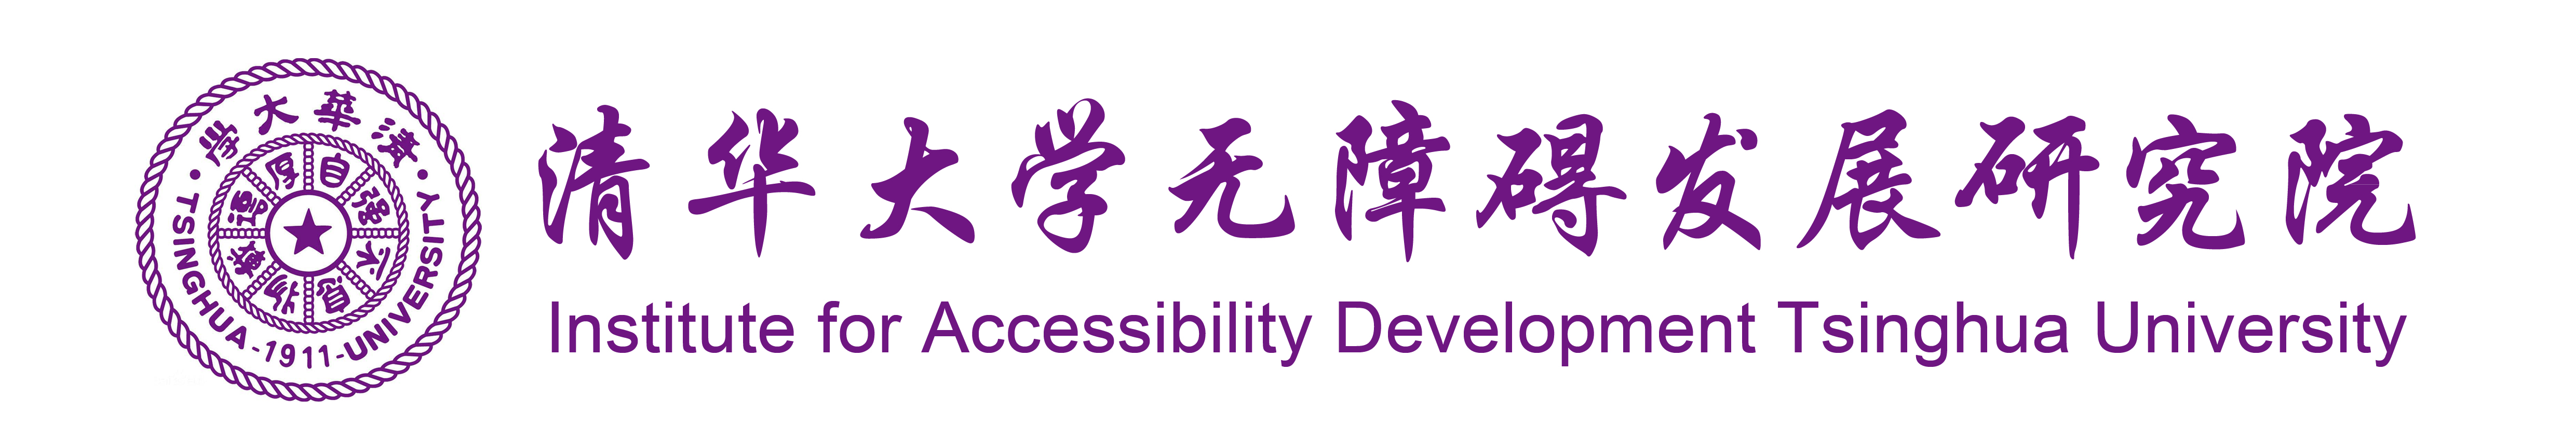 Logo of Institute for Accessibility Development Tsinghua University